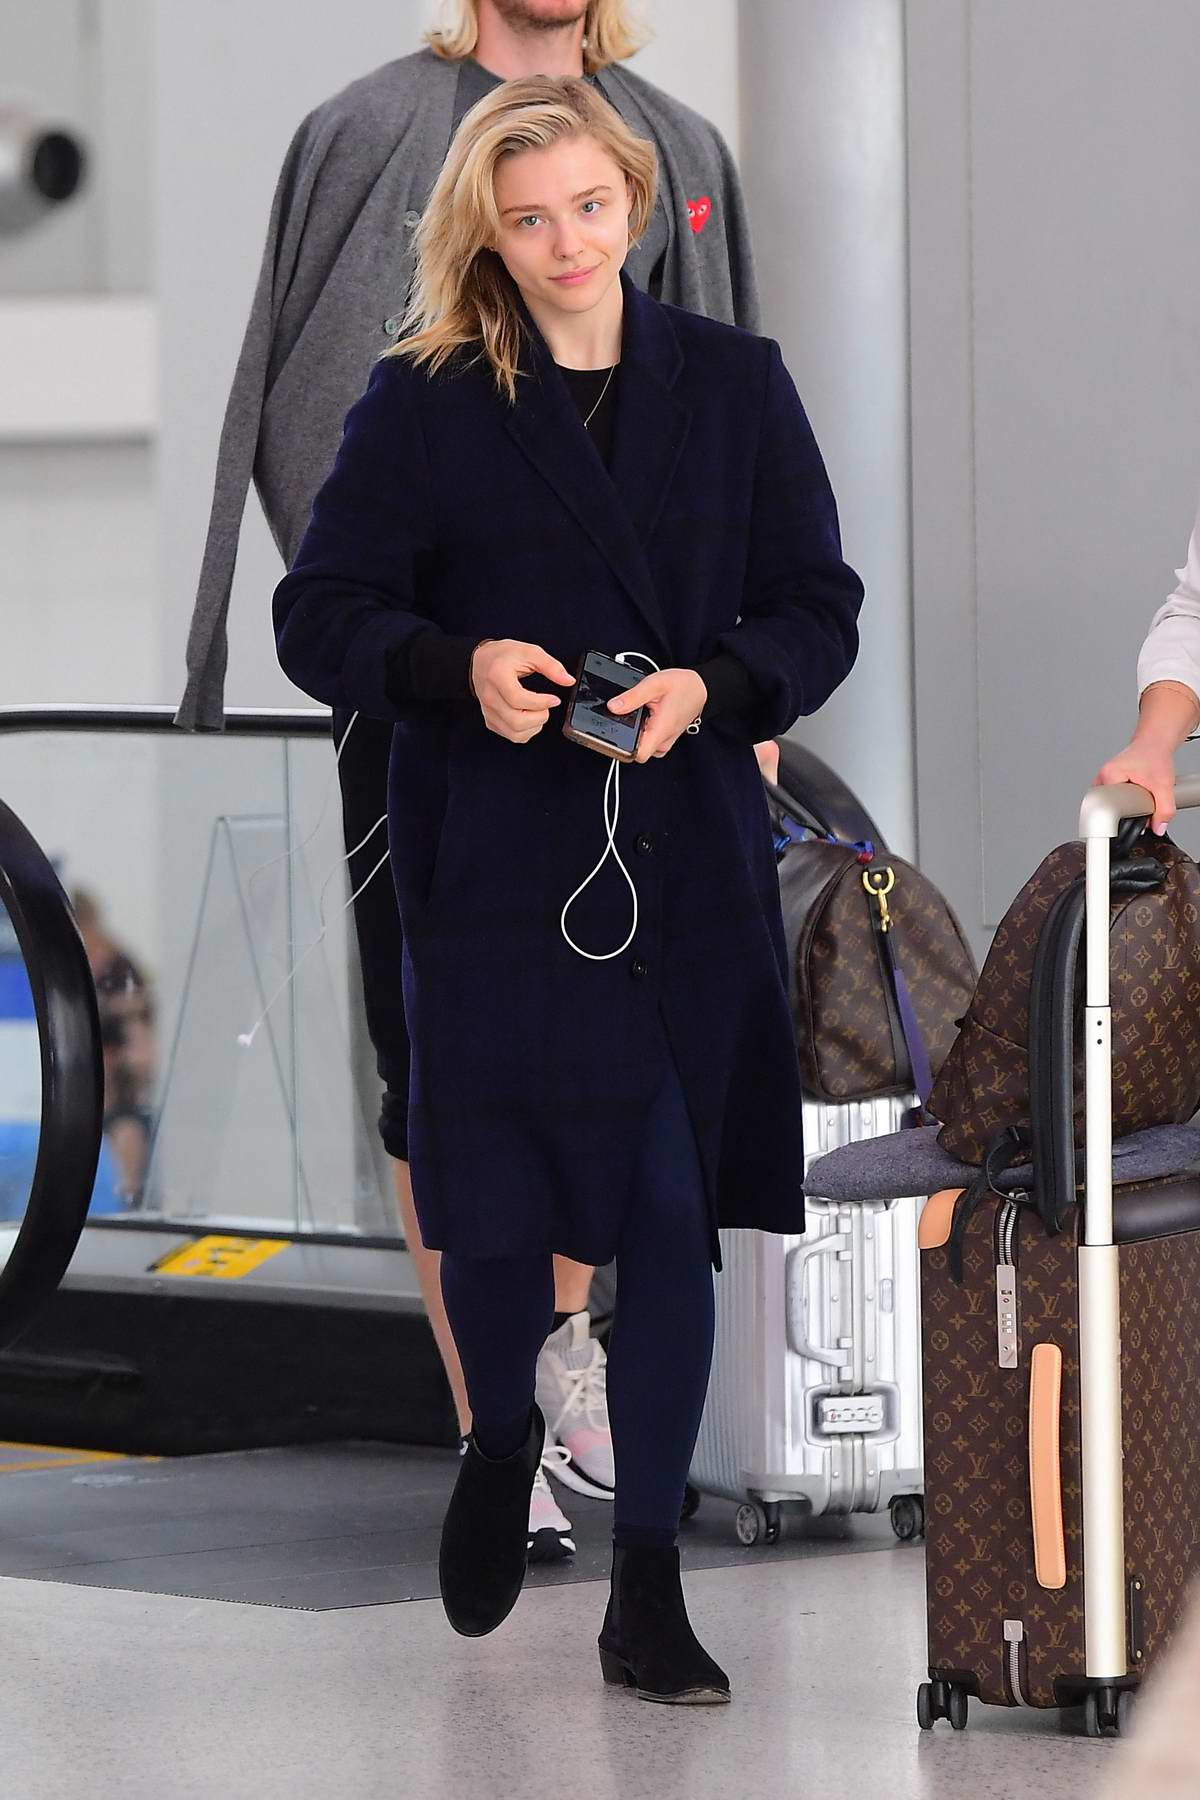 Chloe Grace Moretz looks lovely as she touches down at Newark Airport in New York City